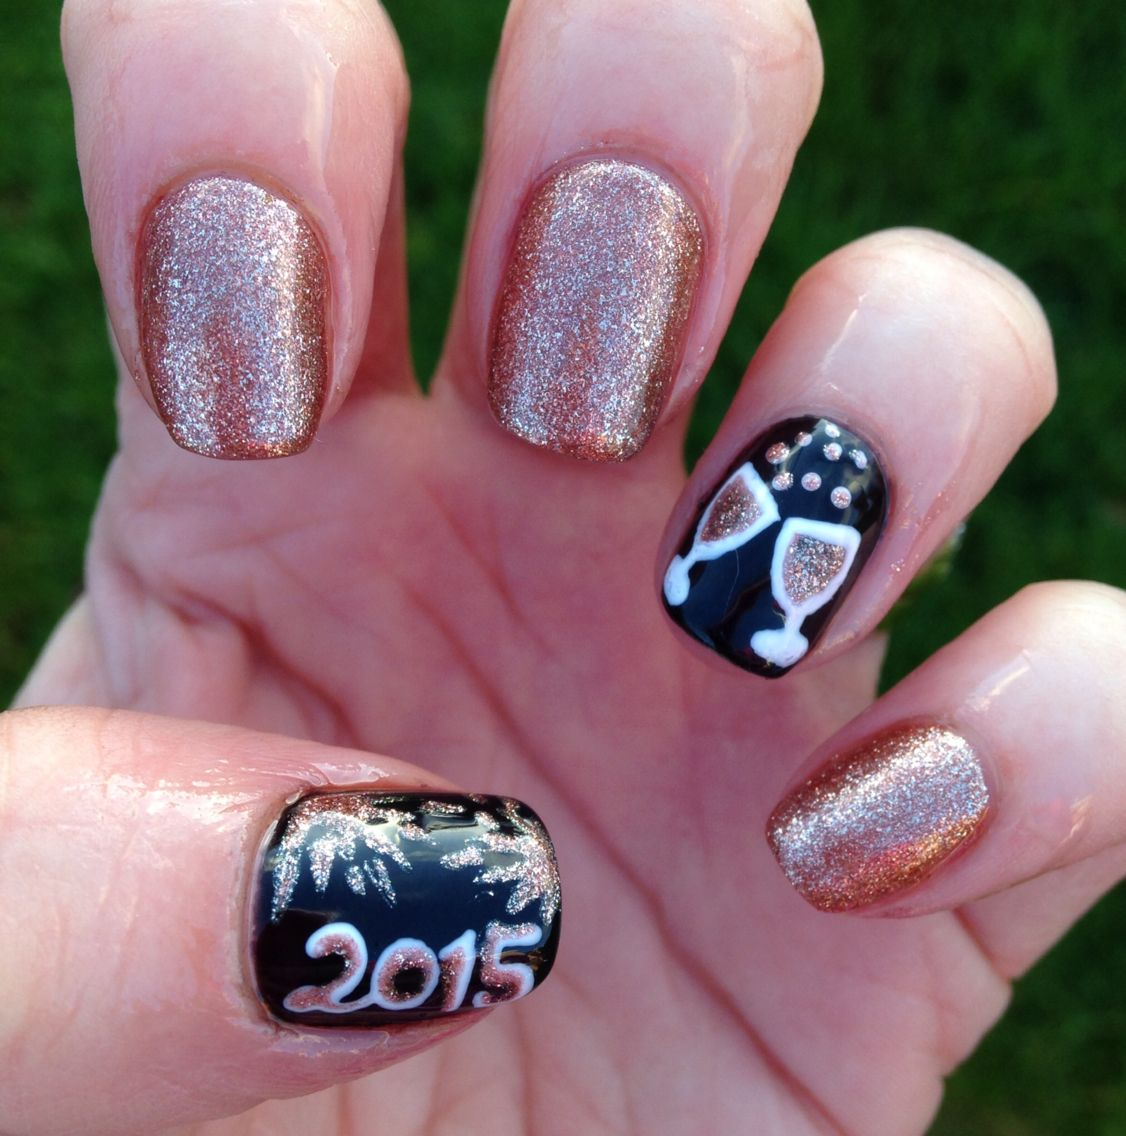 New Years nails, champagne glasses, fireworks & 2015